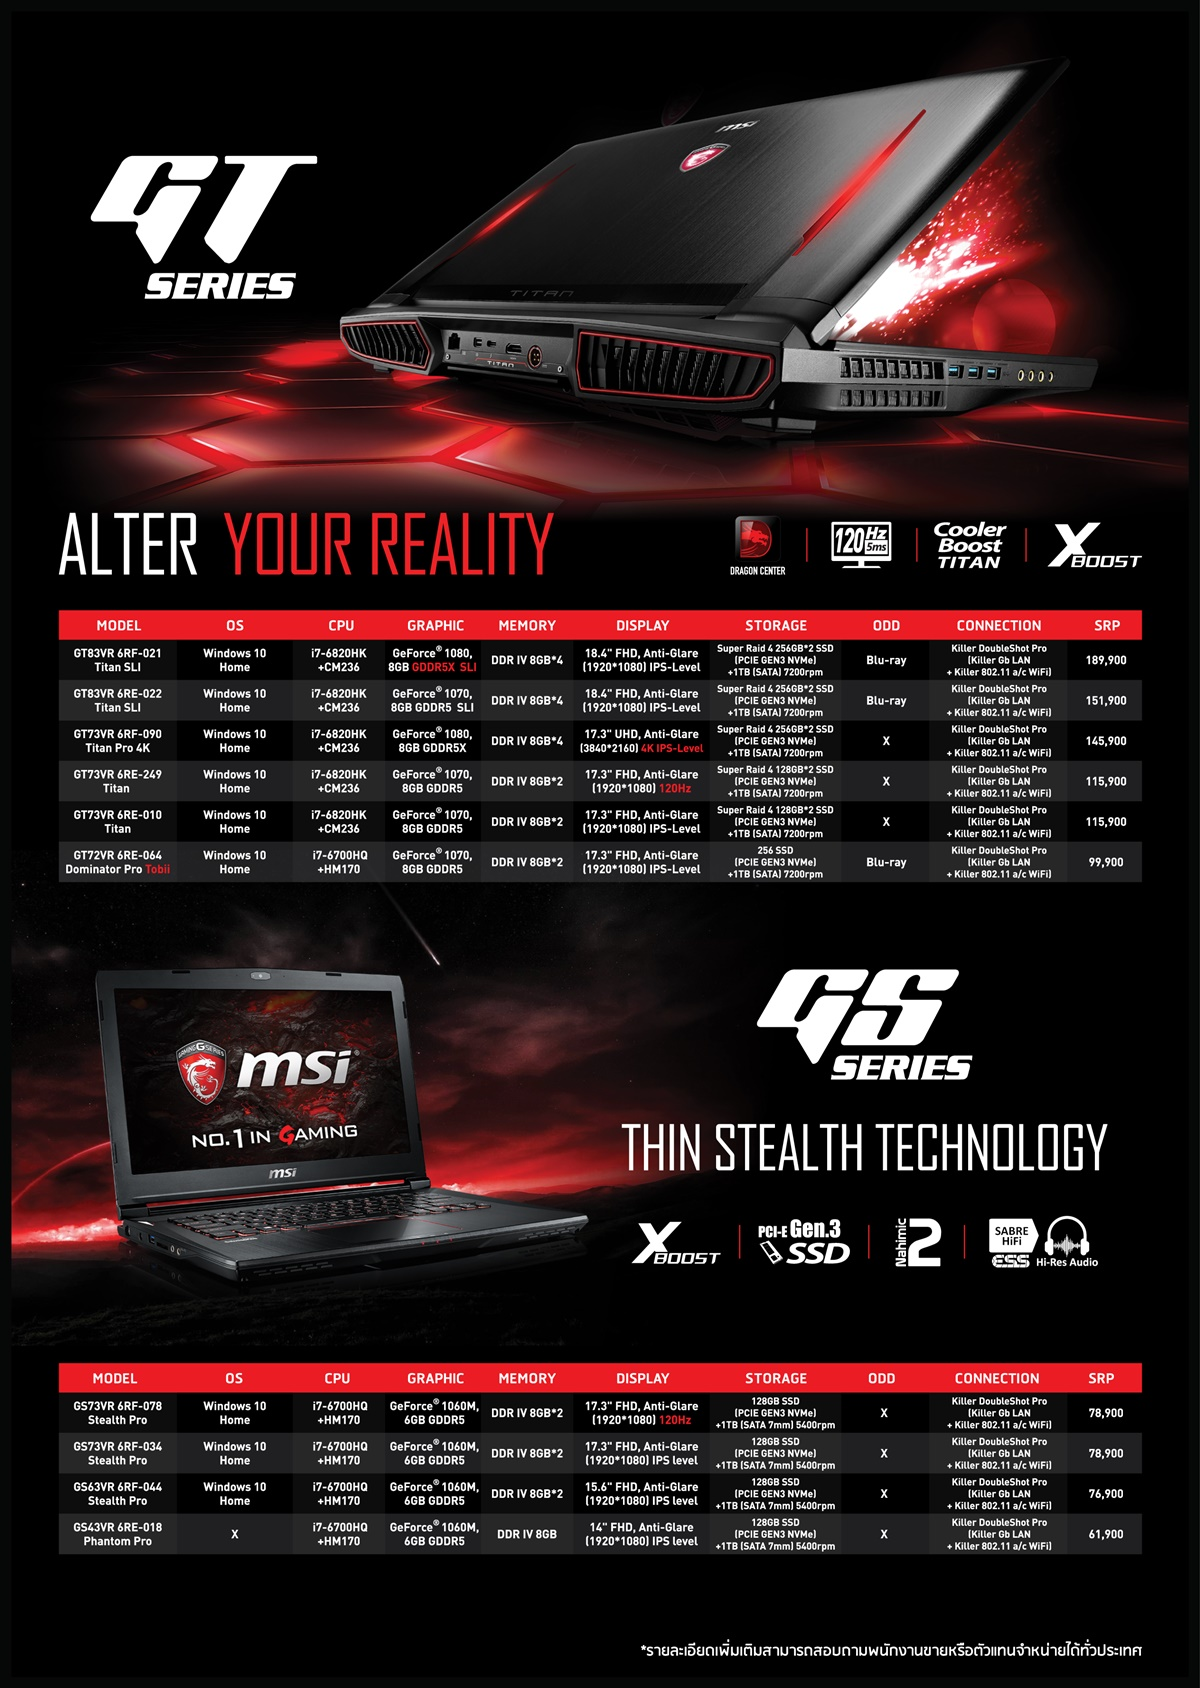 msi_flyer_work16-03